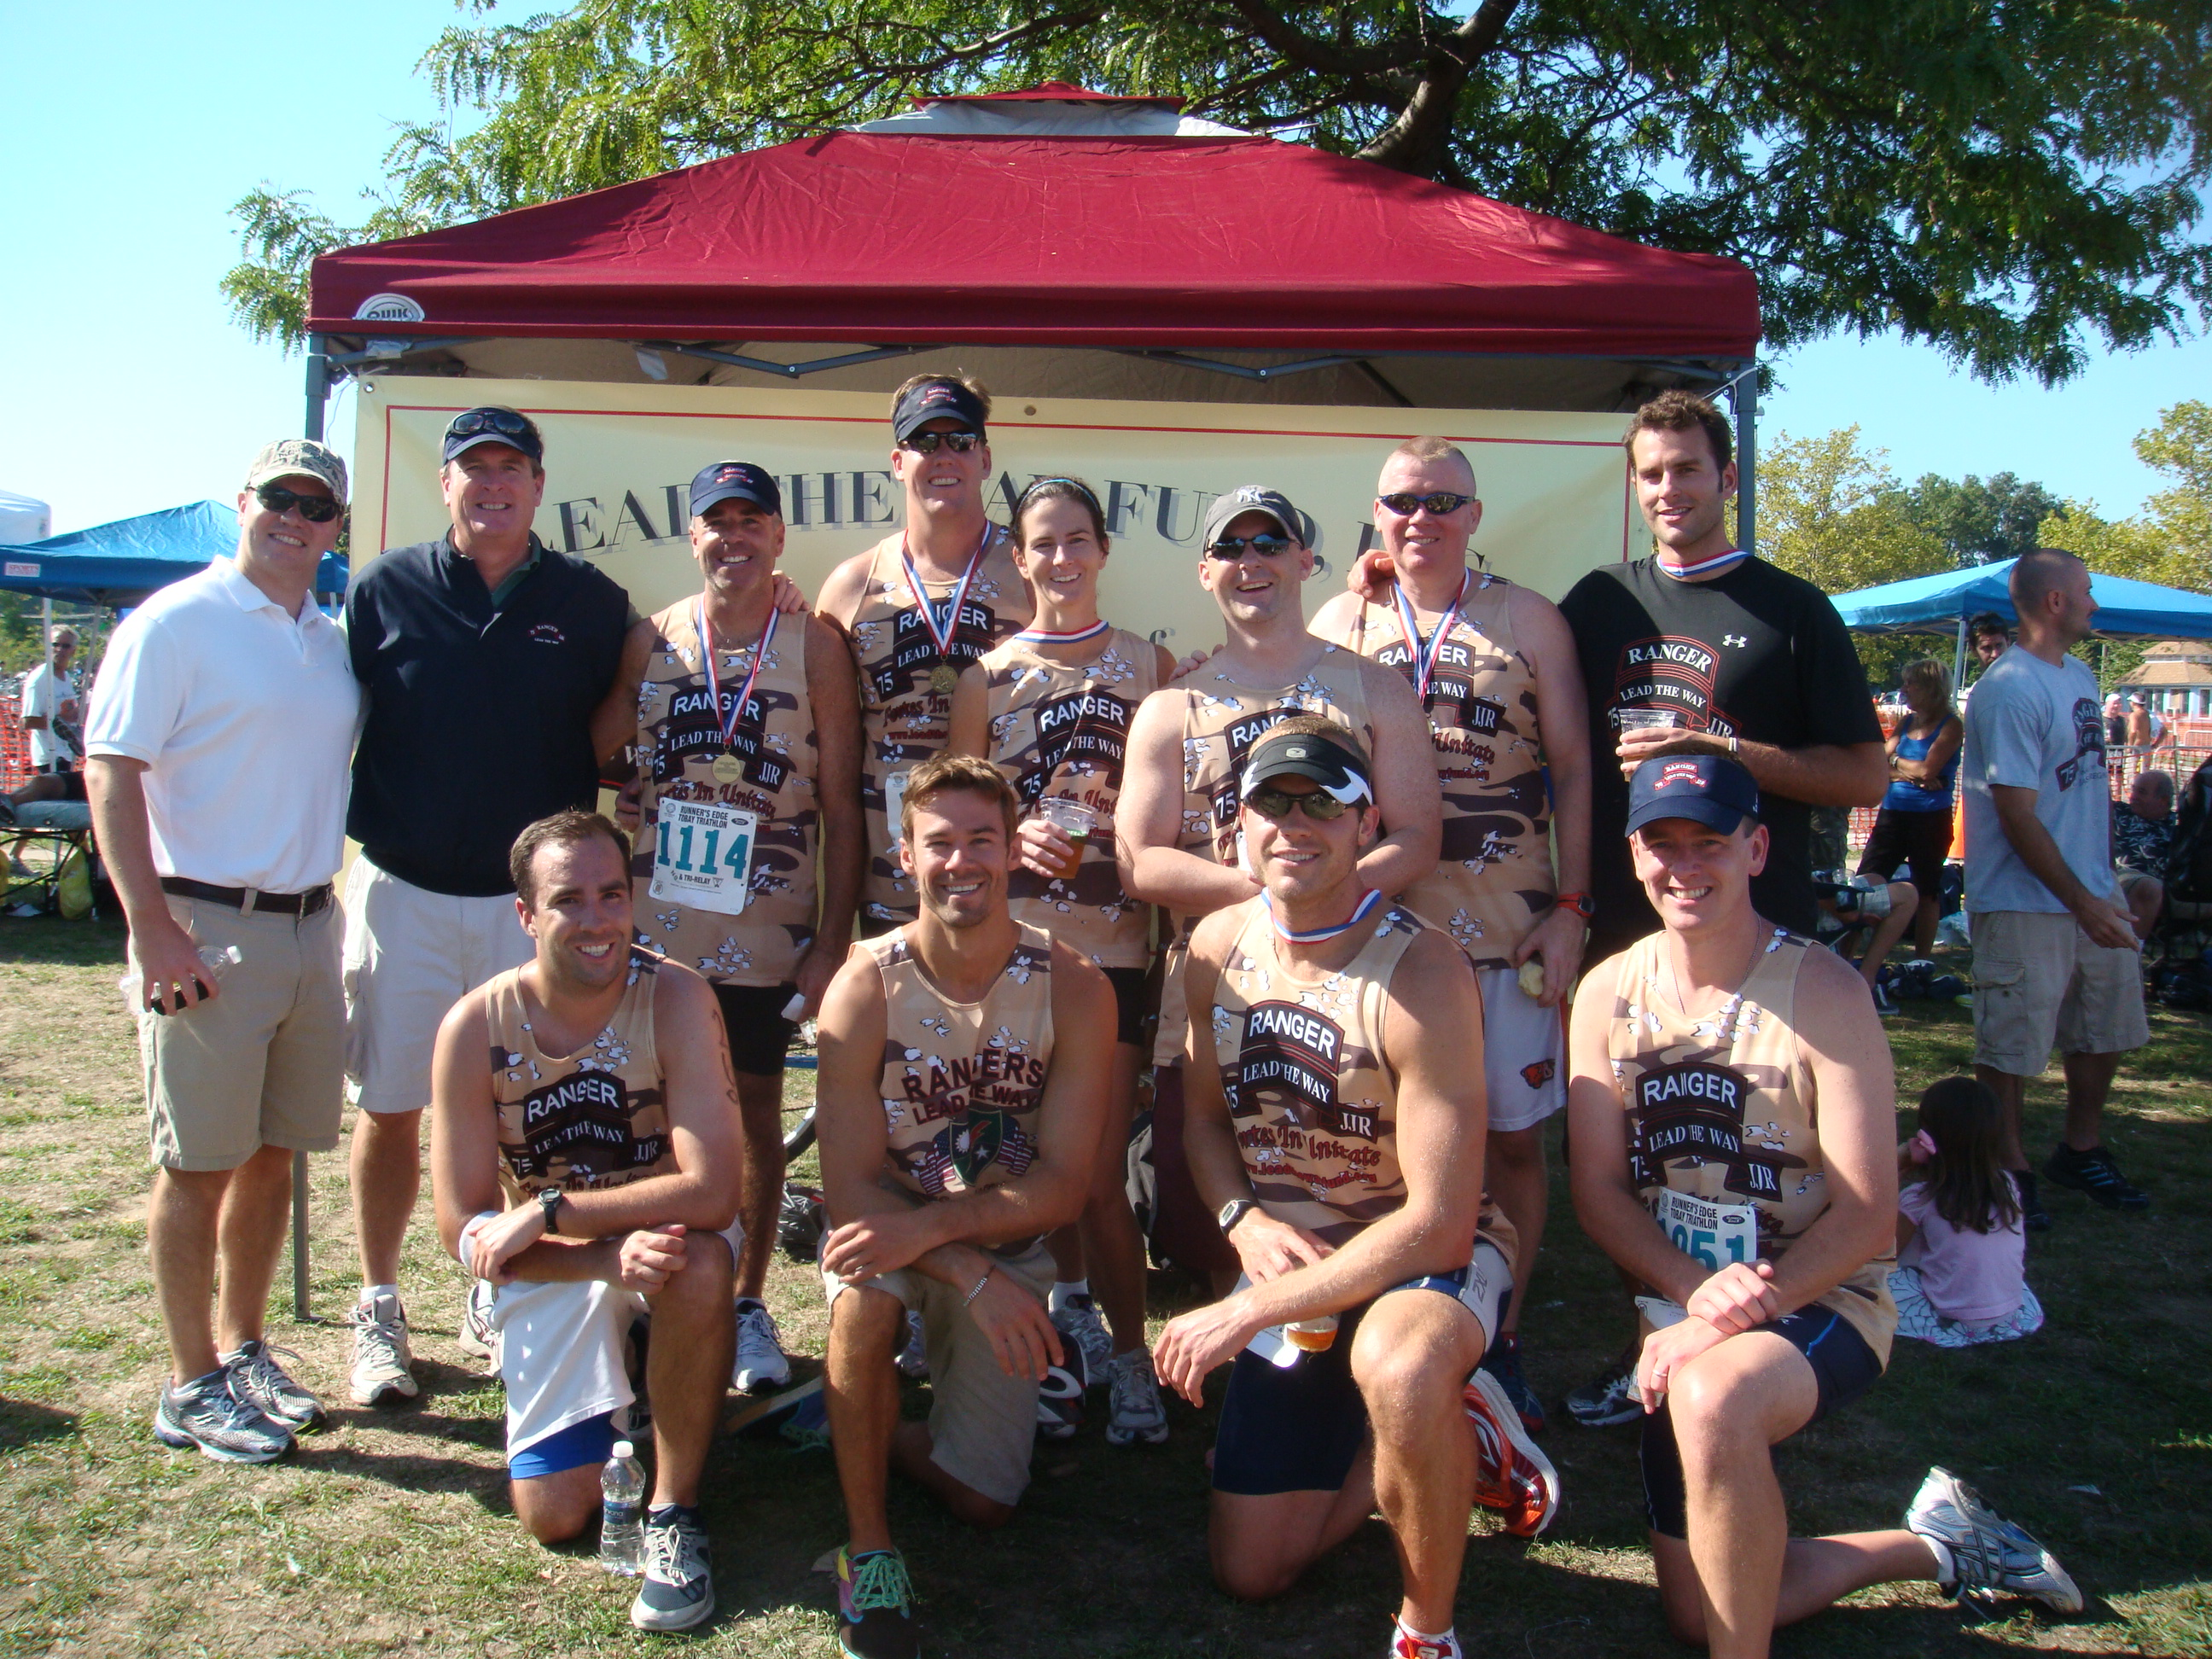 2012 Tobay Triathlon – Support Lead The Way Fund and Join Team Ranger!